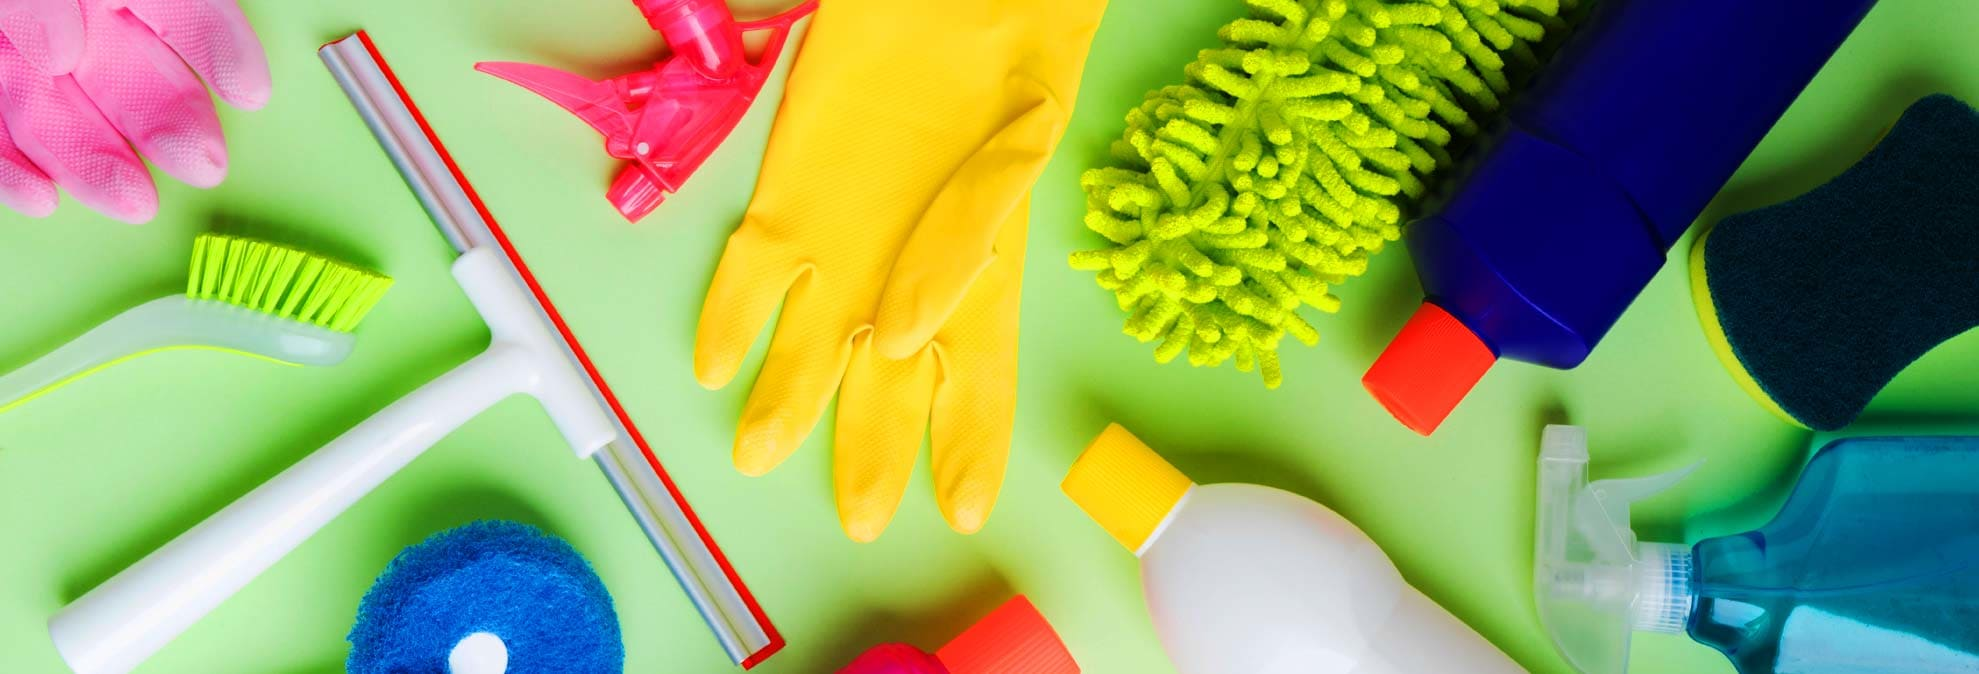 if you want drier dishes use dishwasher rinse aid consumer reports 10 cleaning myths and what to do instead